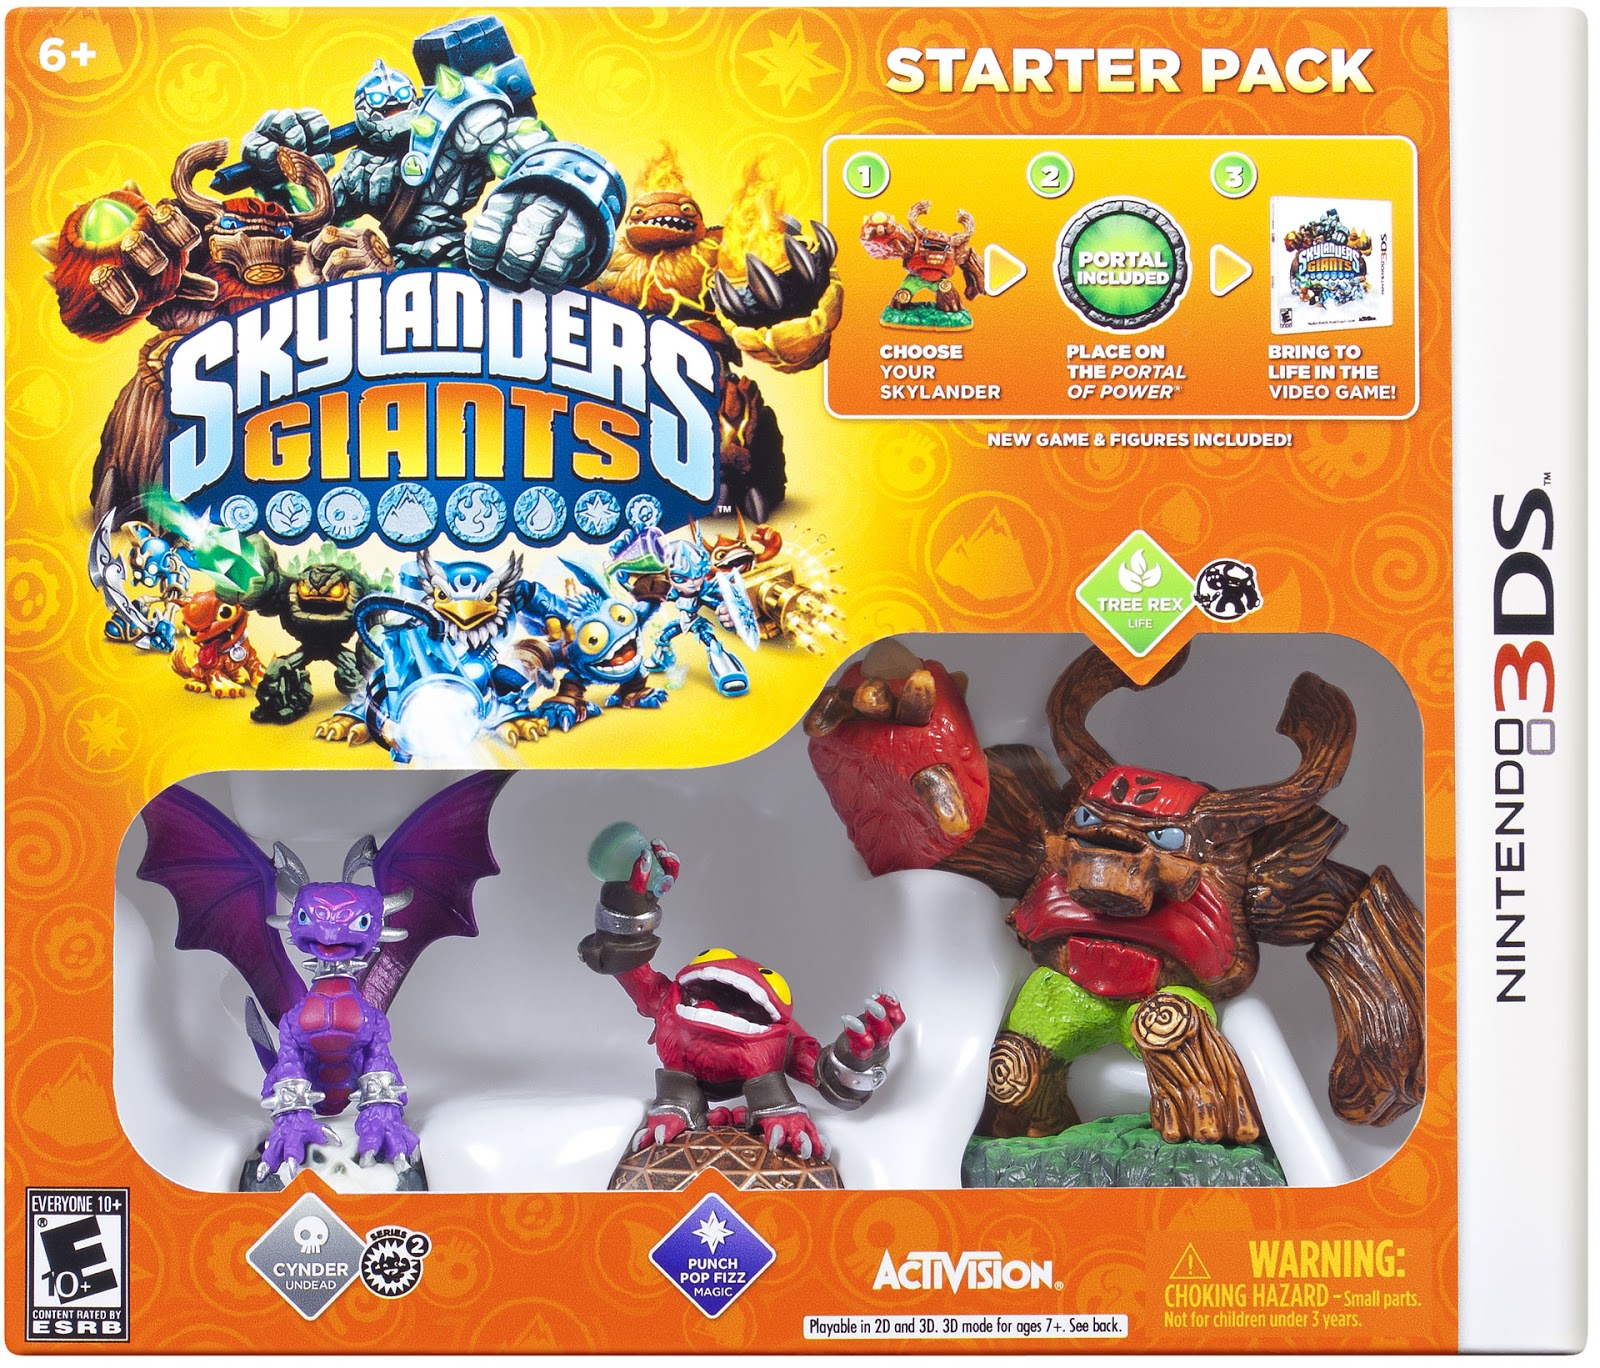 Action Figures Purposeful Skylanders Giants Giant Sky Lander Toy Character Figures Ps3 Xbox Wii Brand New Toys & Hobbies